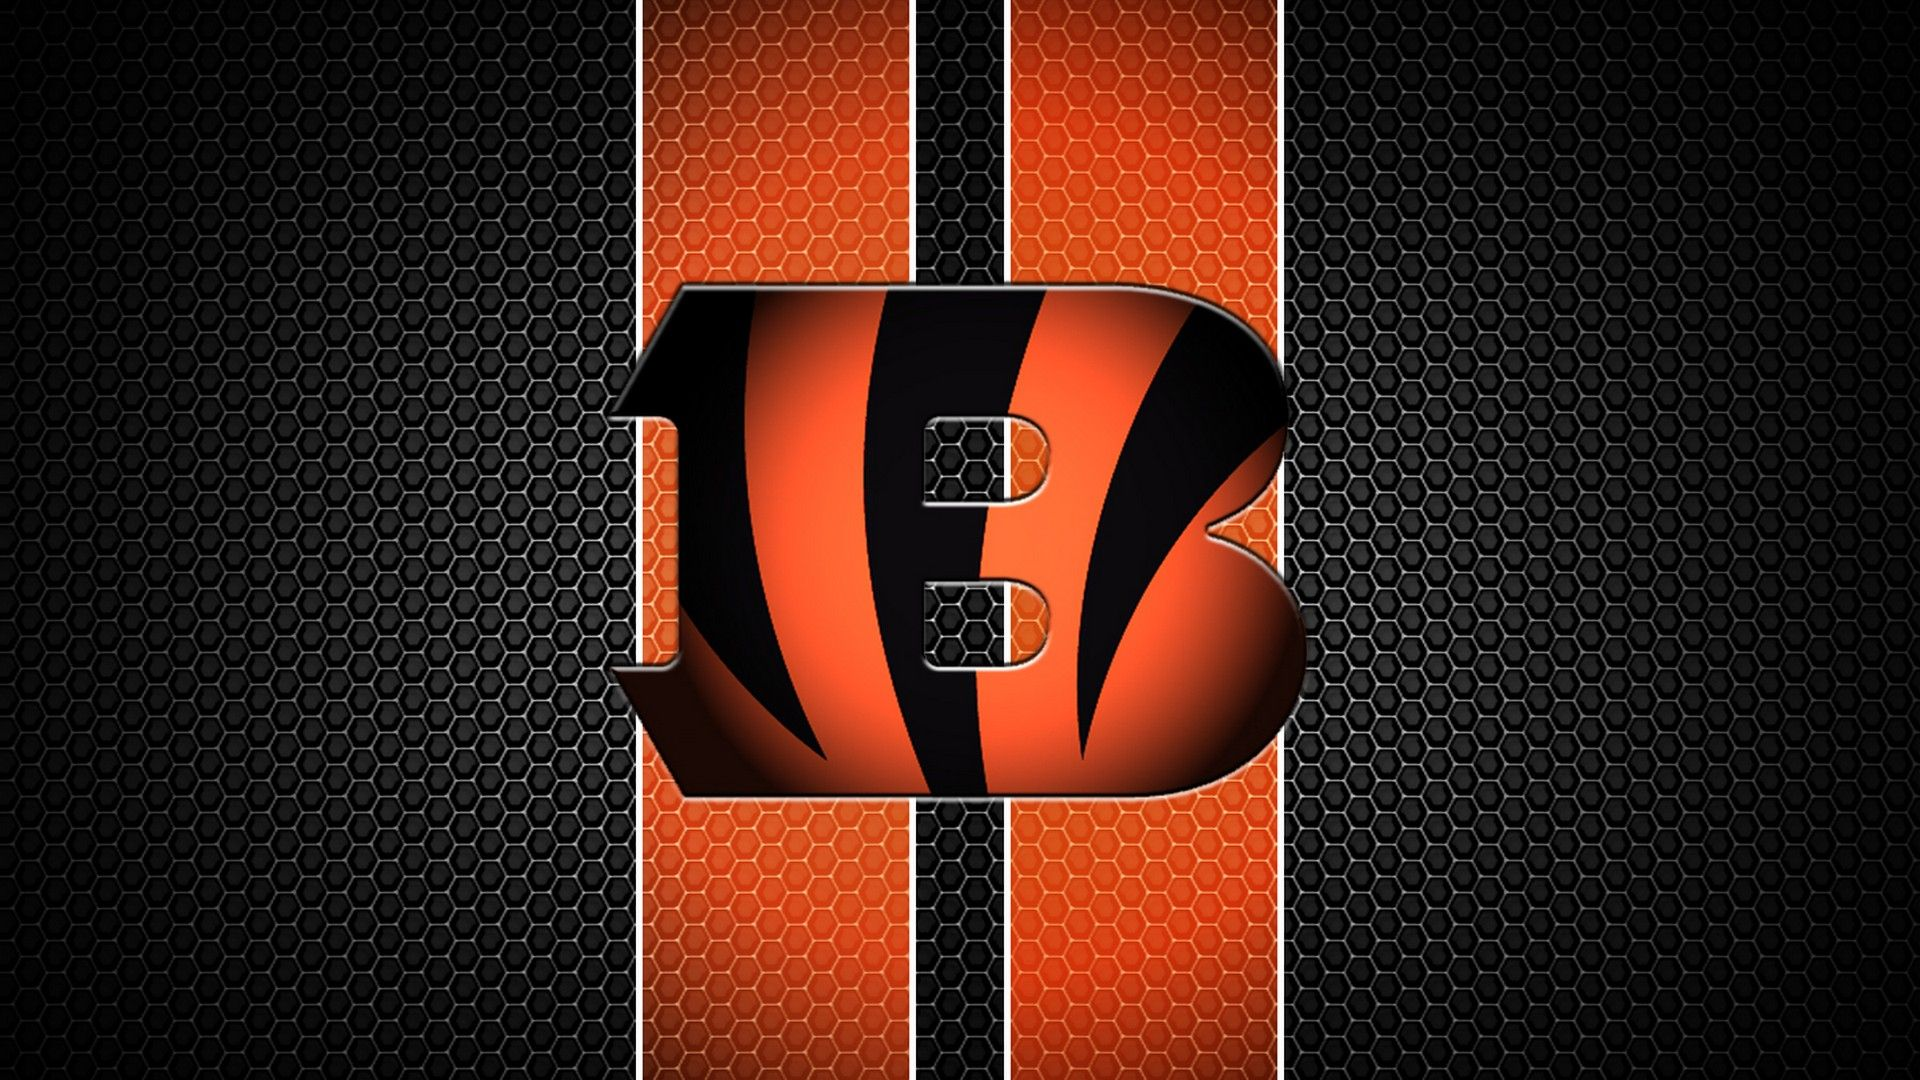 Cincinnati Bengals Wallpaper For Mac Backgrounds | Best NFL Wallpapers